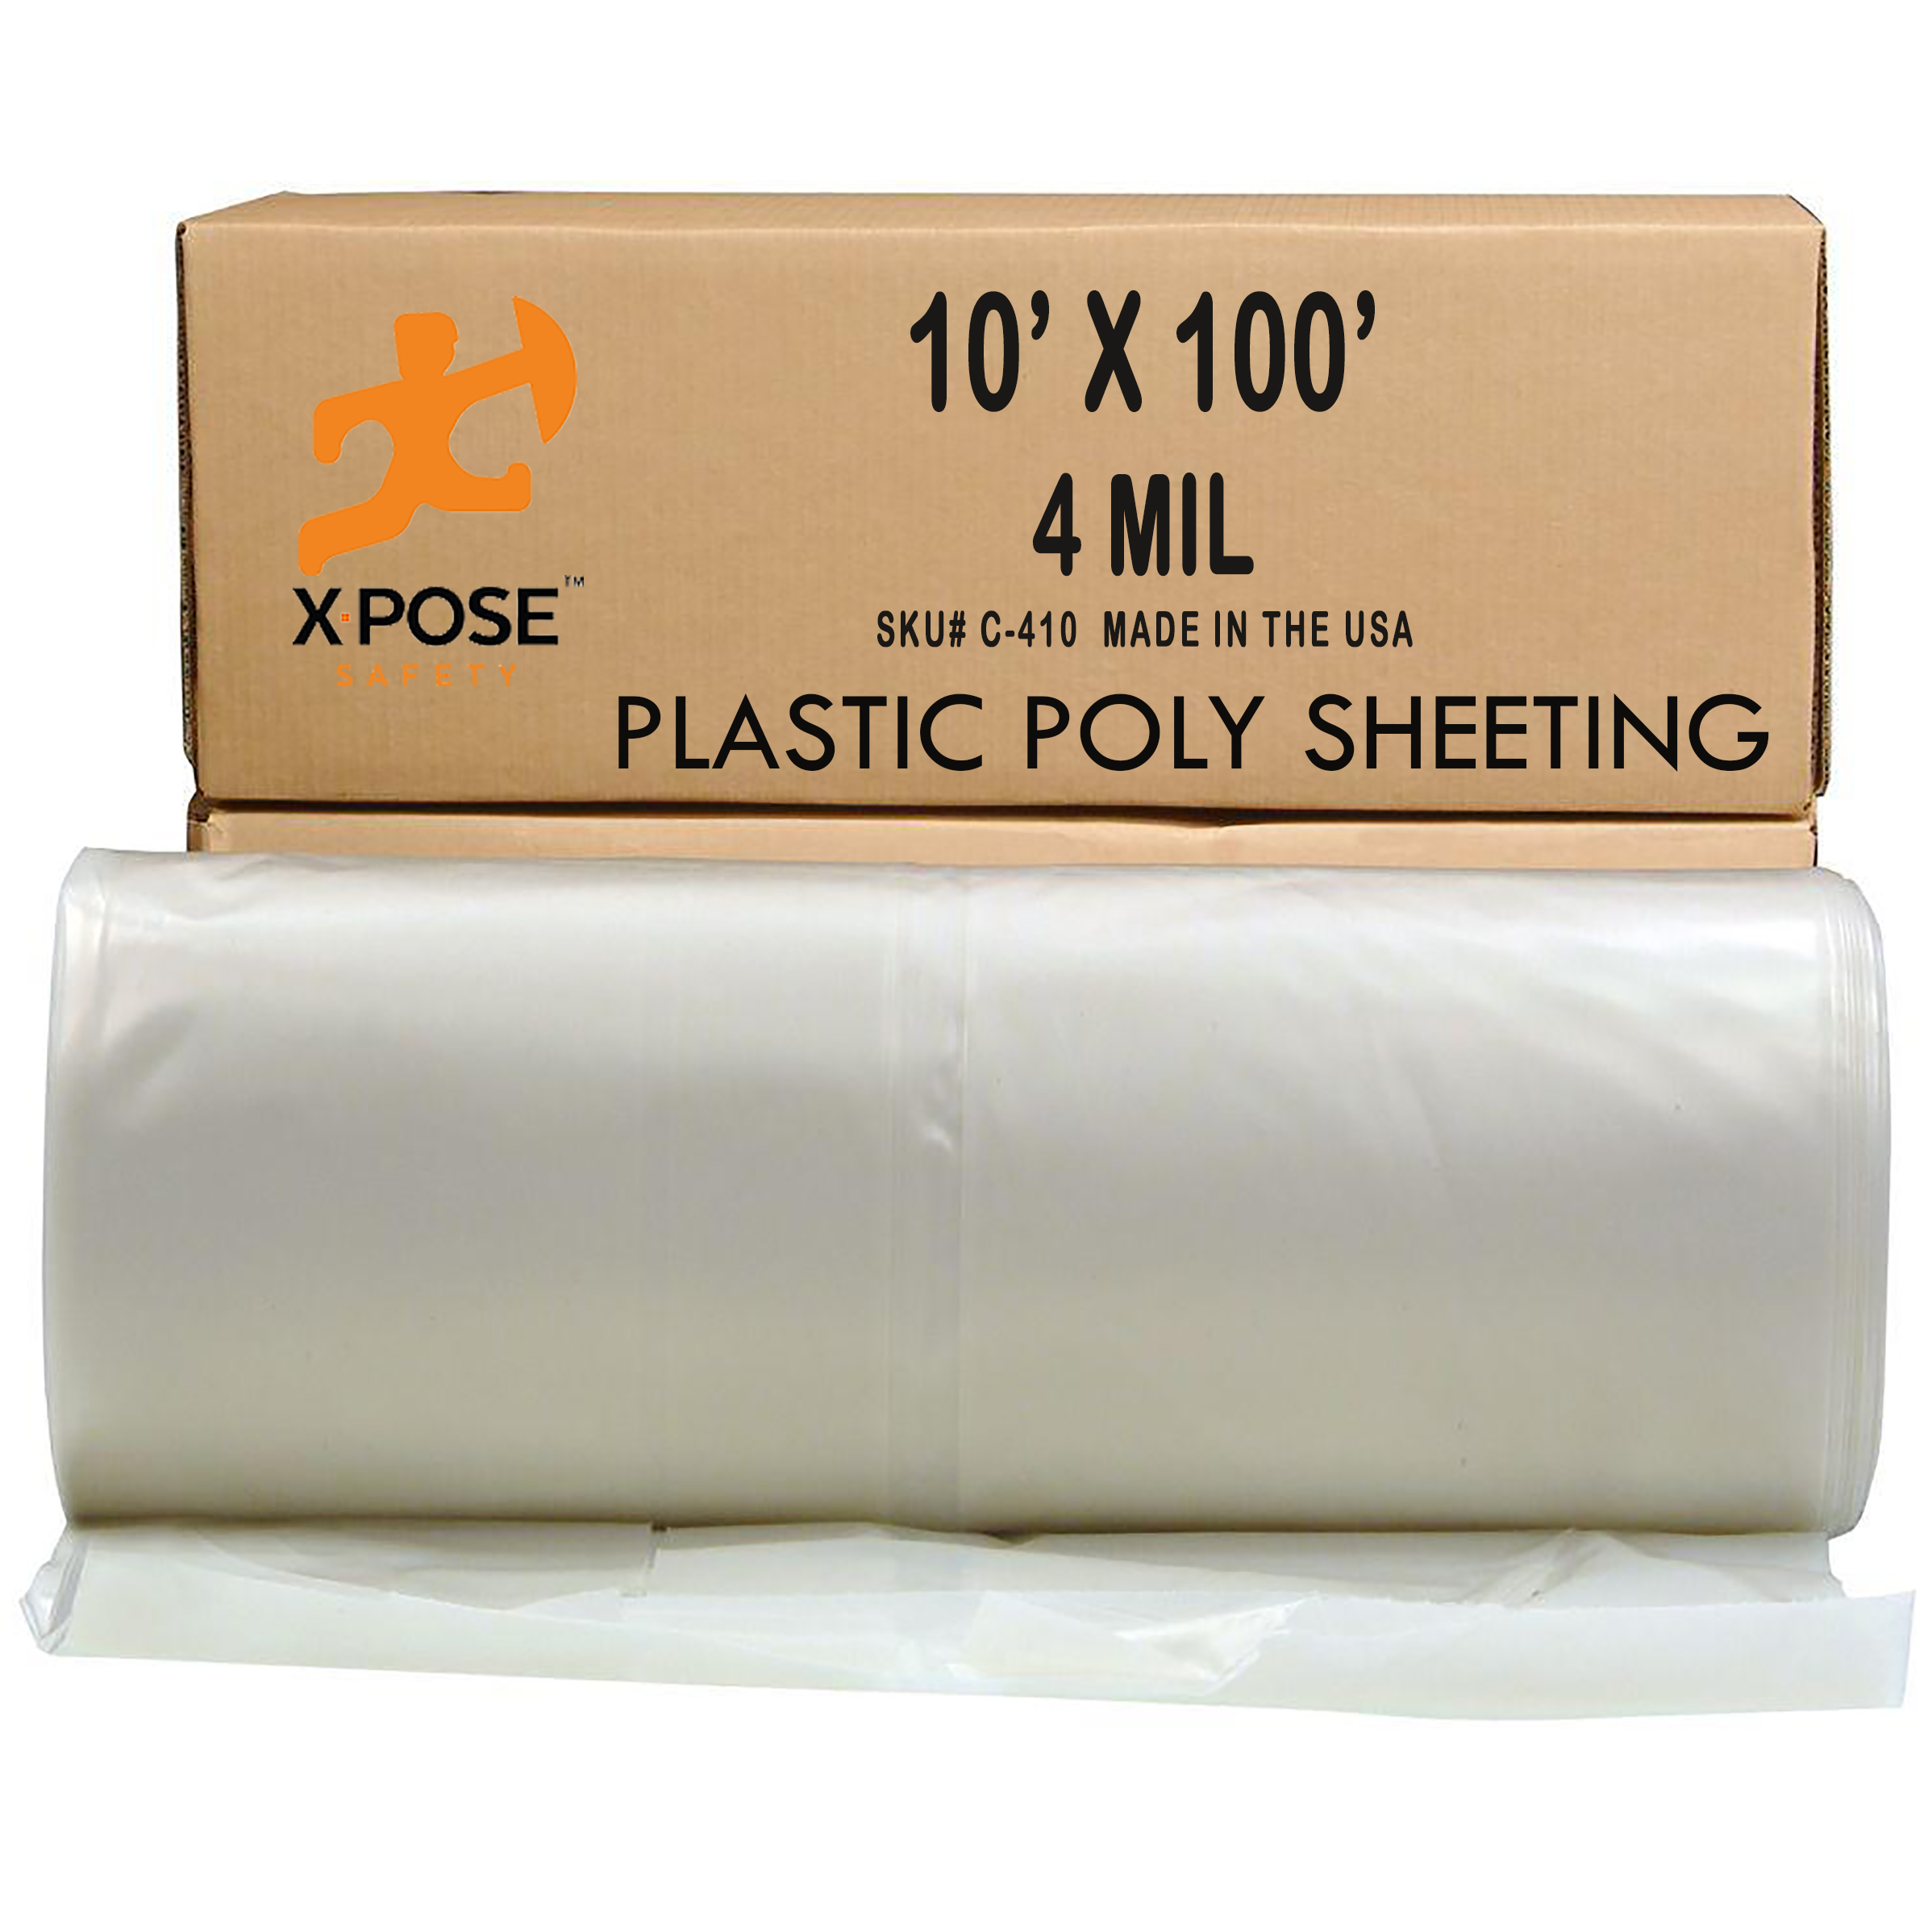 Clear Poly Sheeting - 10 x 100 Feet - Heavy Duty, 4 Mil Thick Plastic Tarp – Waterproof Vapor and Dust Protective Equipment Cover - Agricultural, Construction and Industrial Use - by Xpose Safety C-410